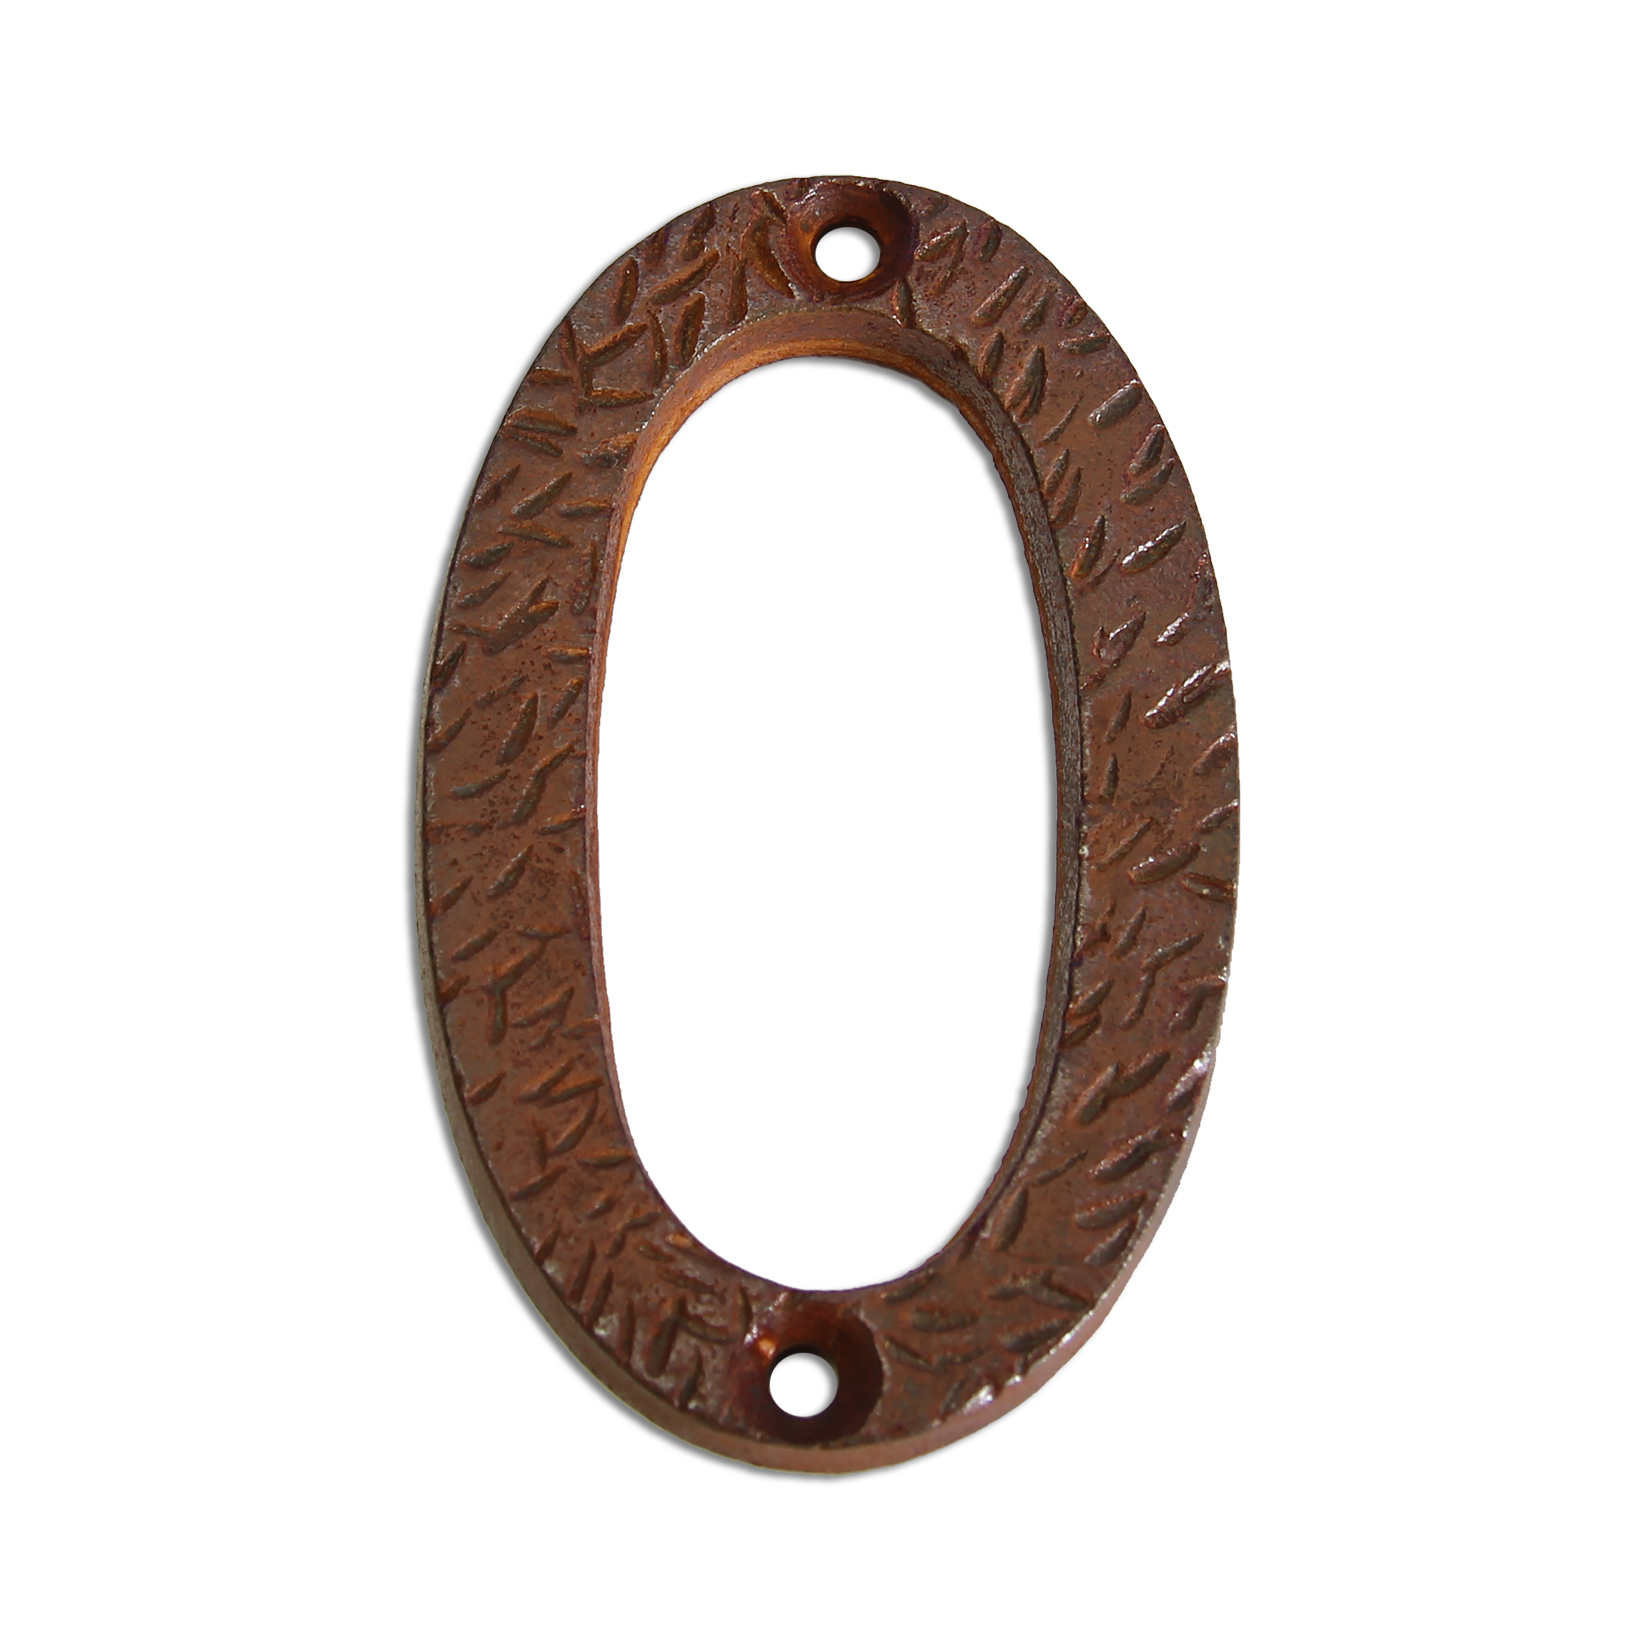 3-inch iron metal house number in rustic country finish - metal number 0